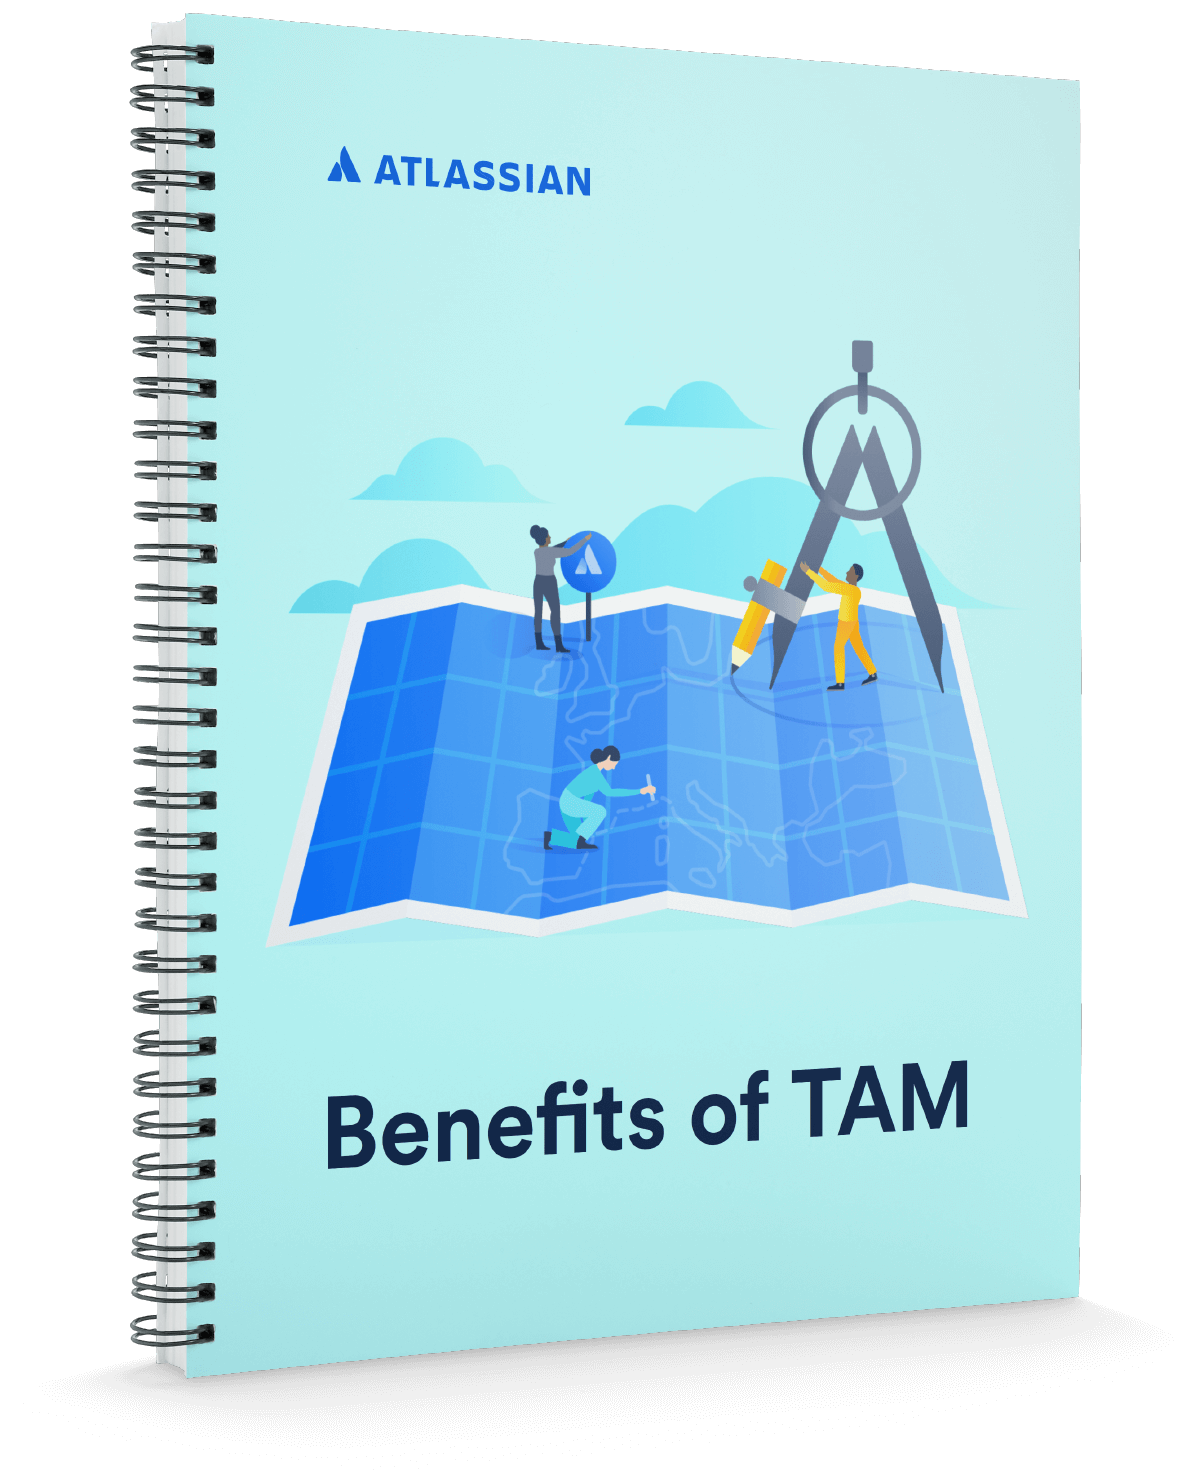 Benefits of TAM notebook cover